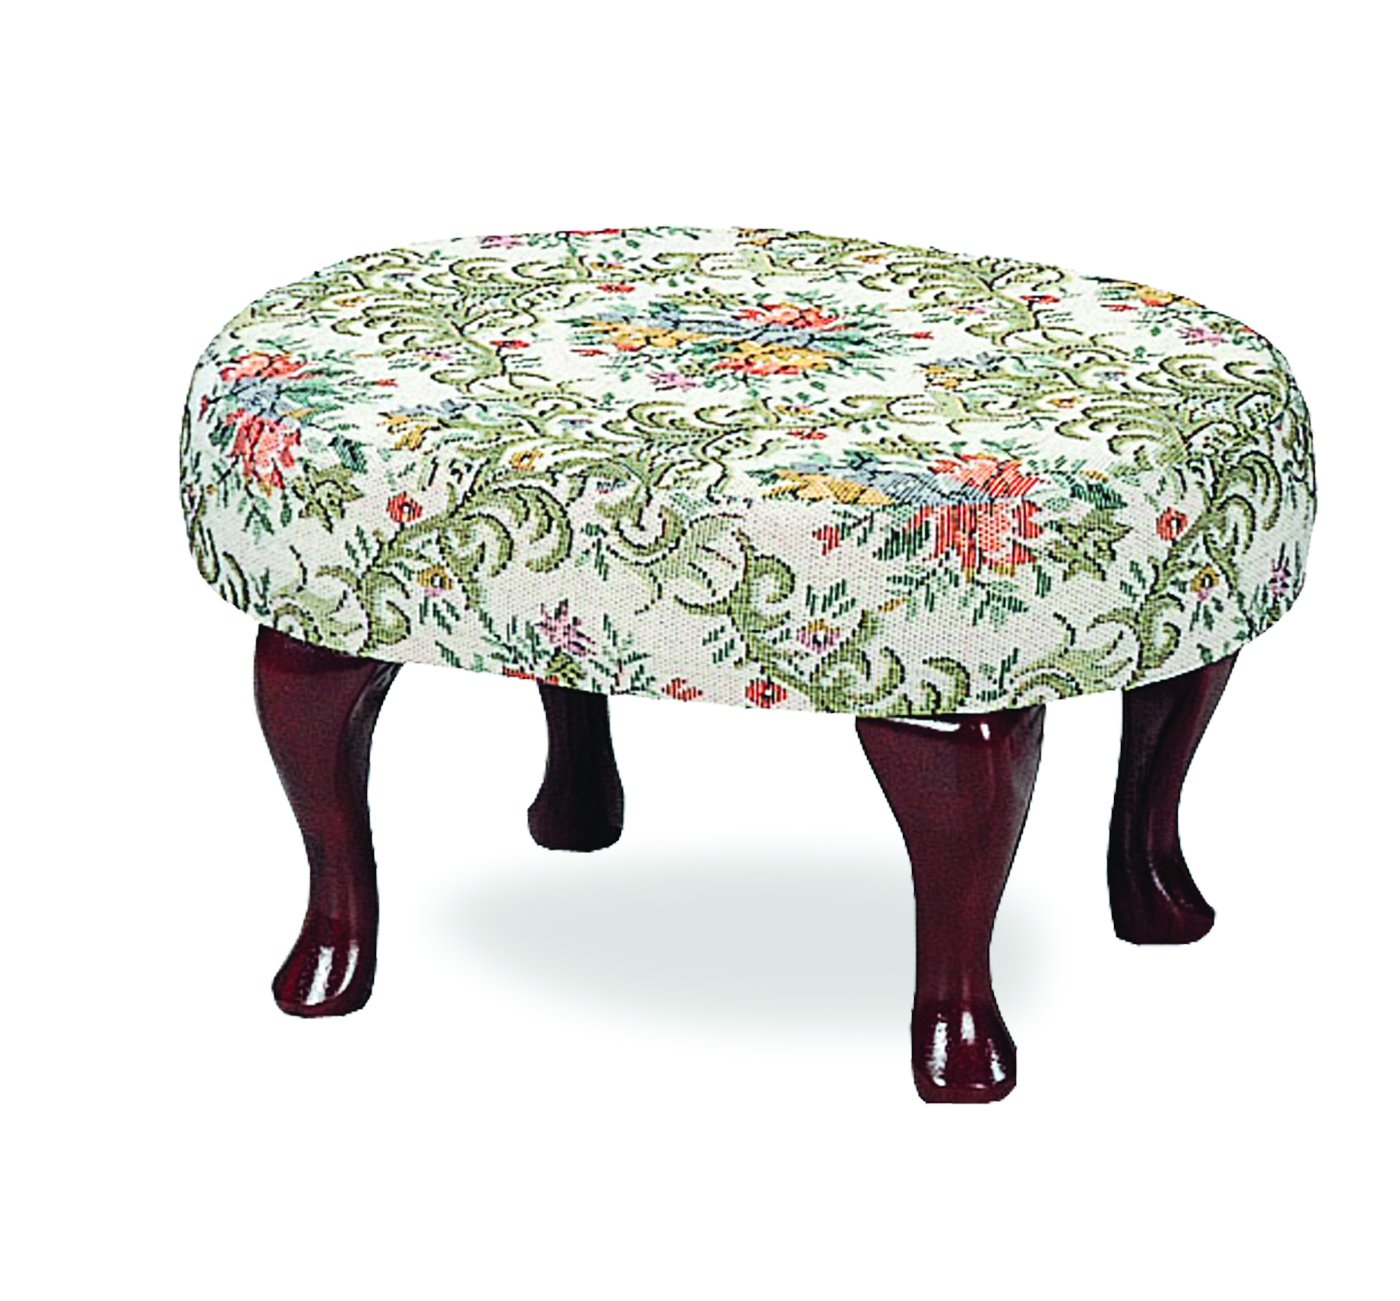 Upholstered Foot Stool with Shapely Legs Merlot